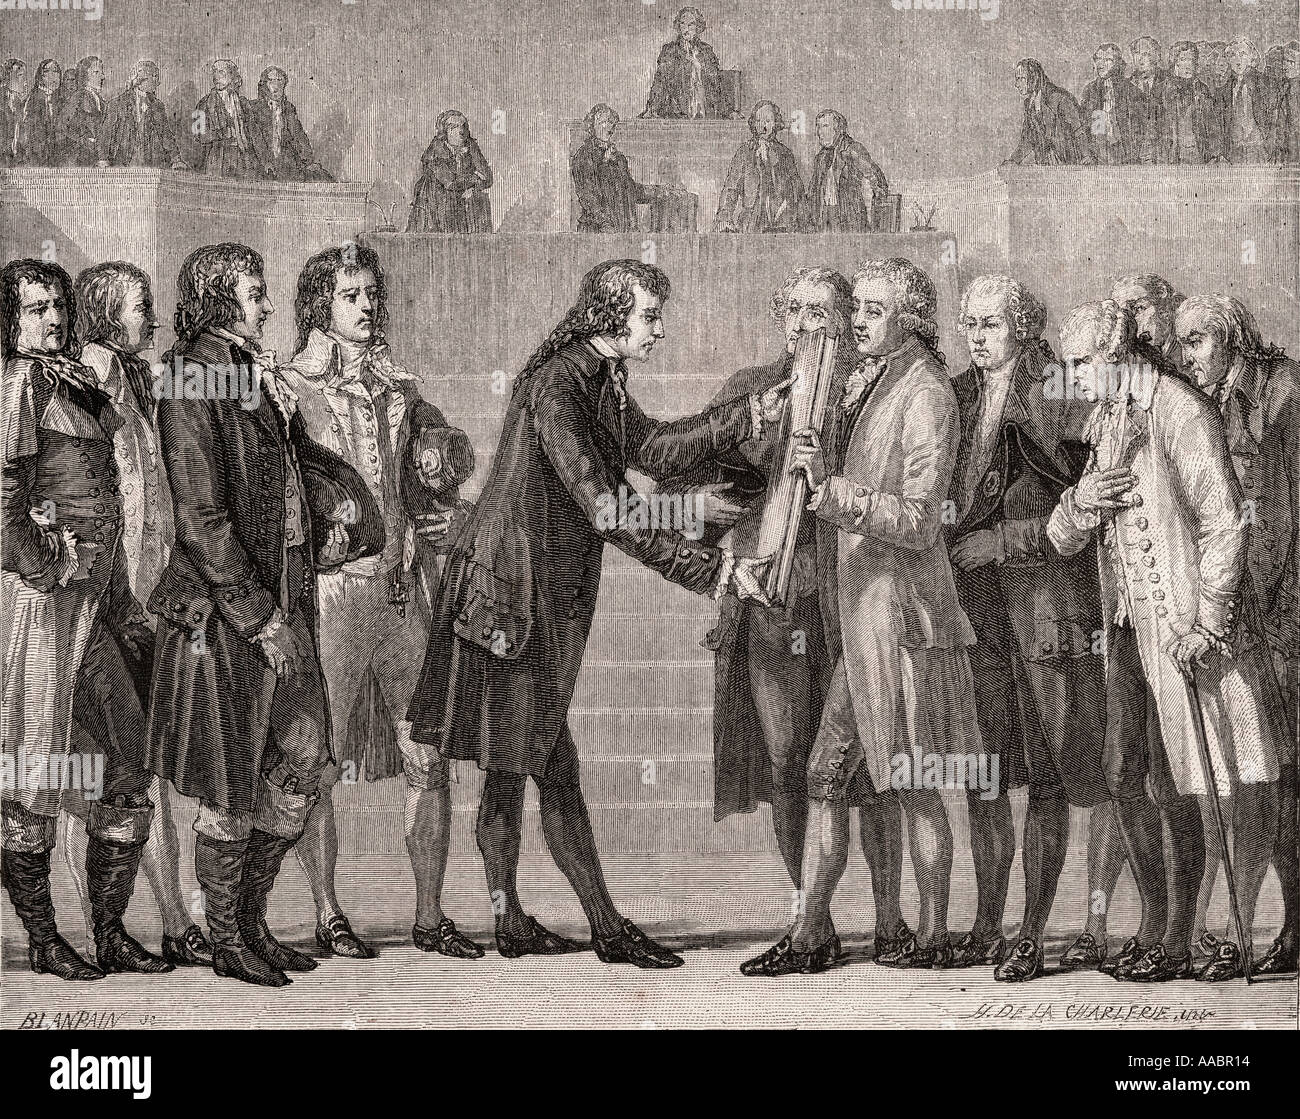 Swearing on the book of the constitution,14 September, 1791. Louis XVI,  1754 - 1793. King of France, 1774 - 1792.